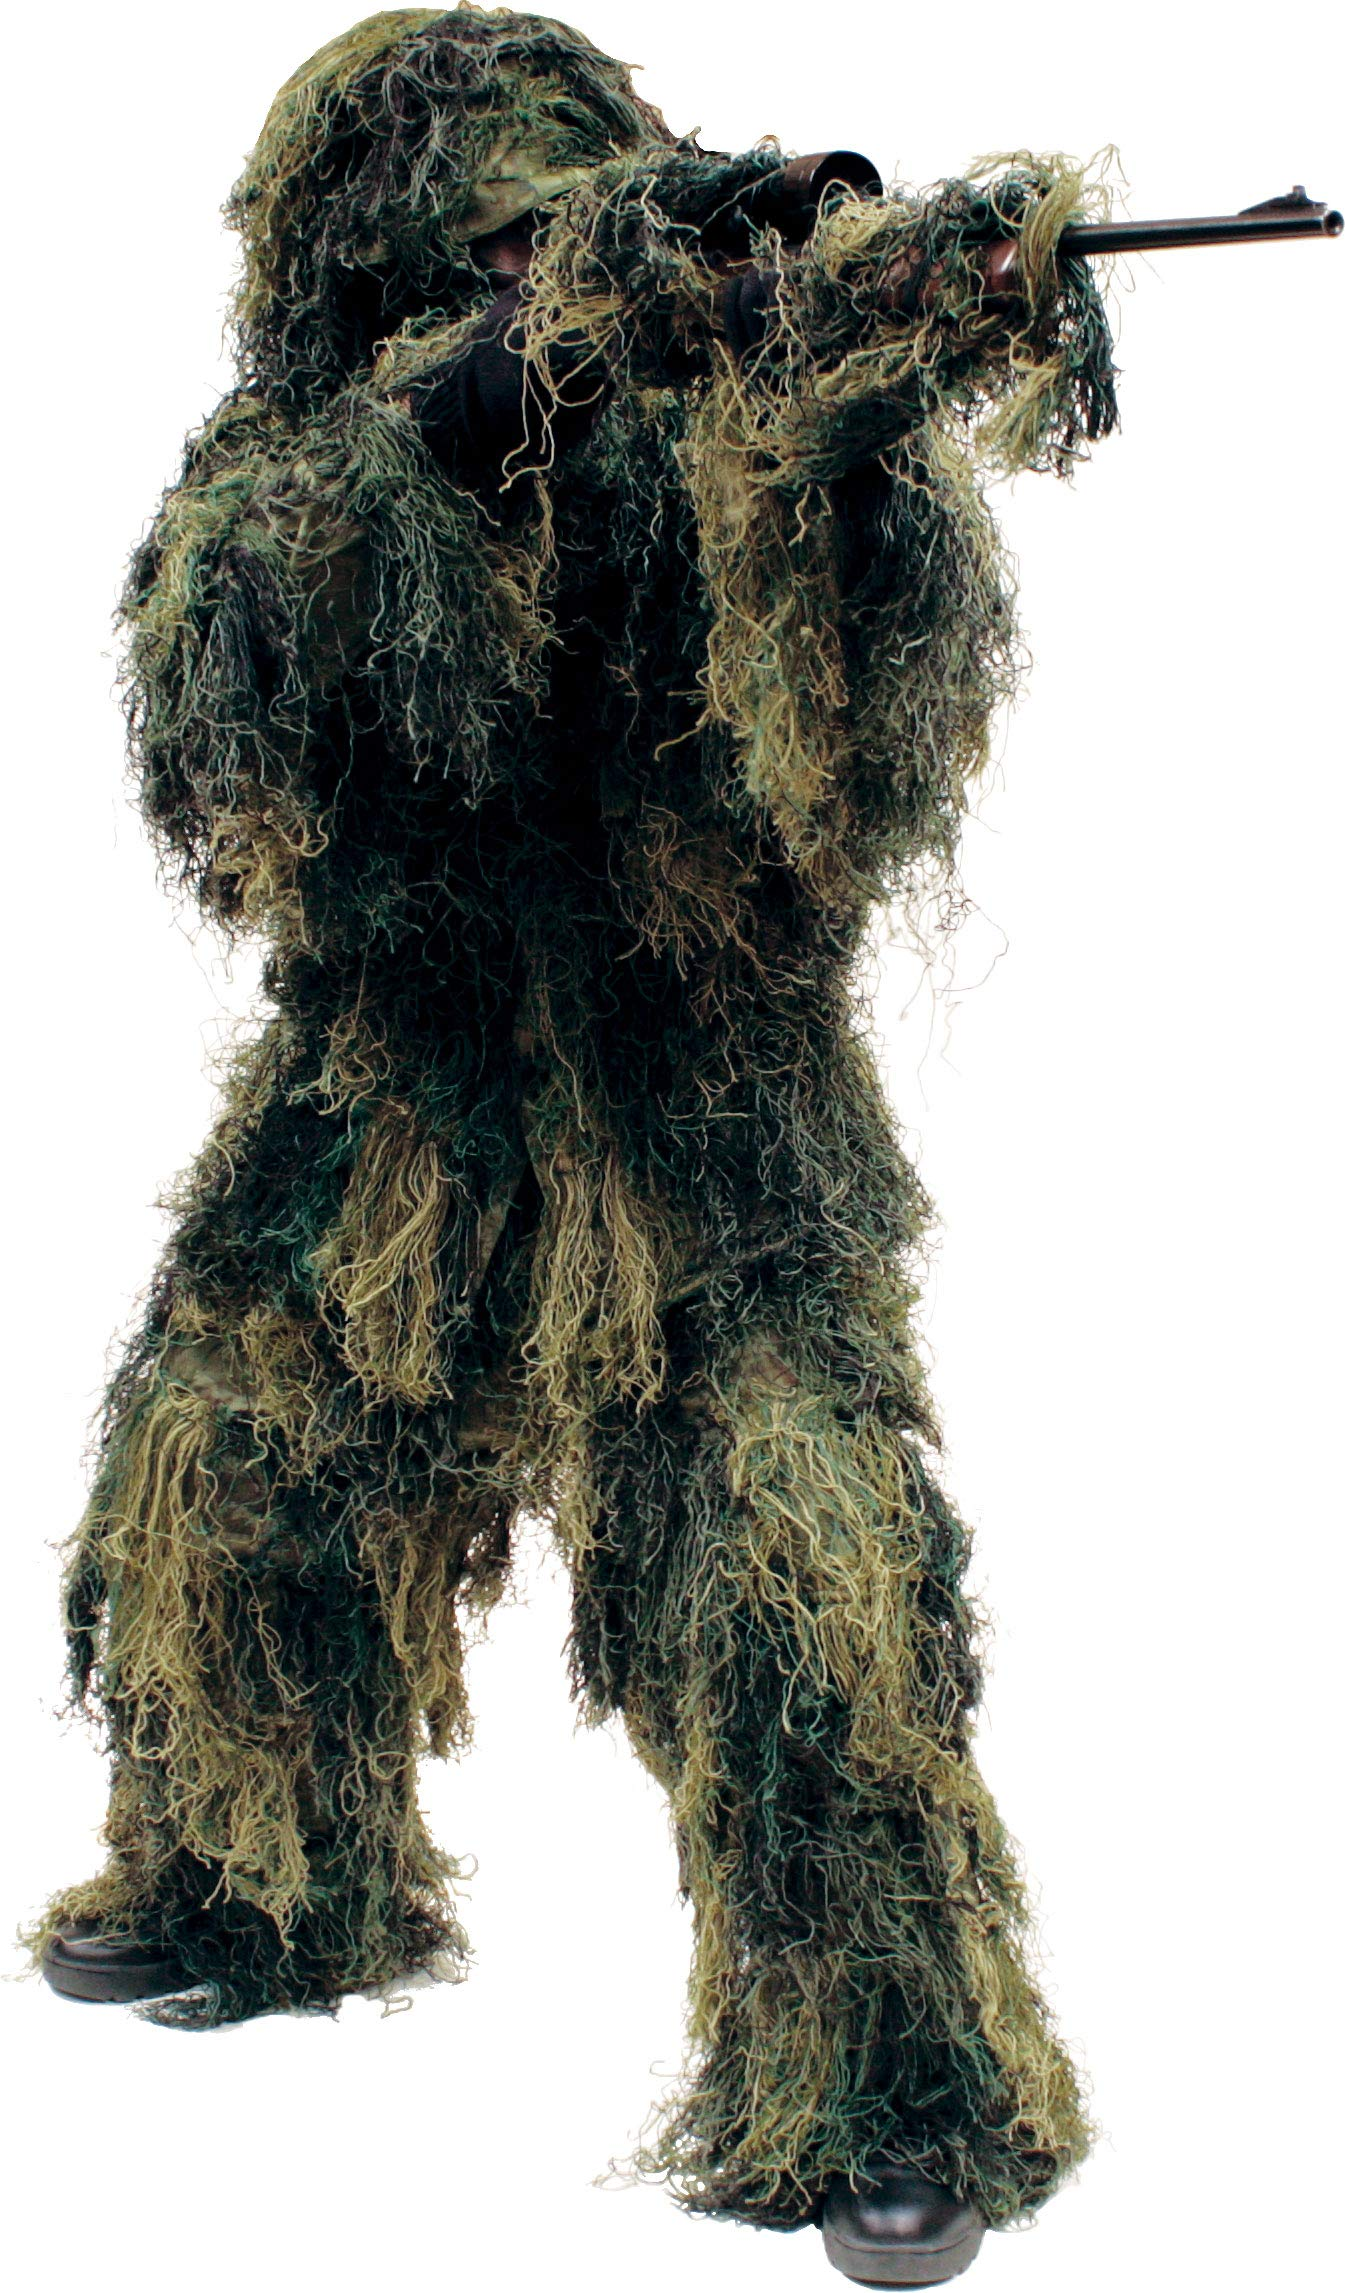 Red Rock Outdoor Gear - Ghillie Suit by Red Rock Outdoor Gear (Image #1)